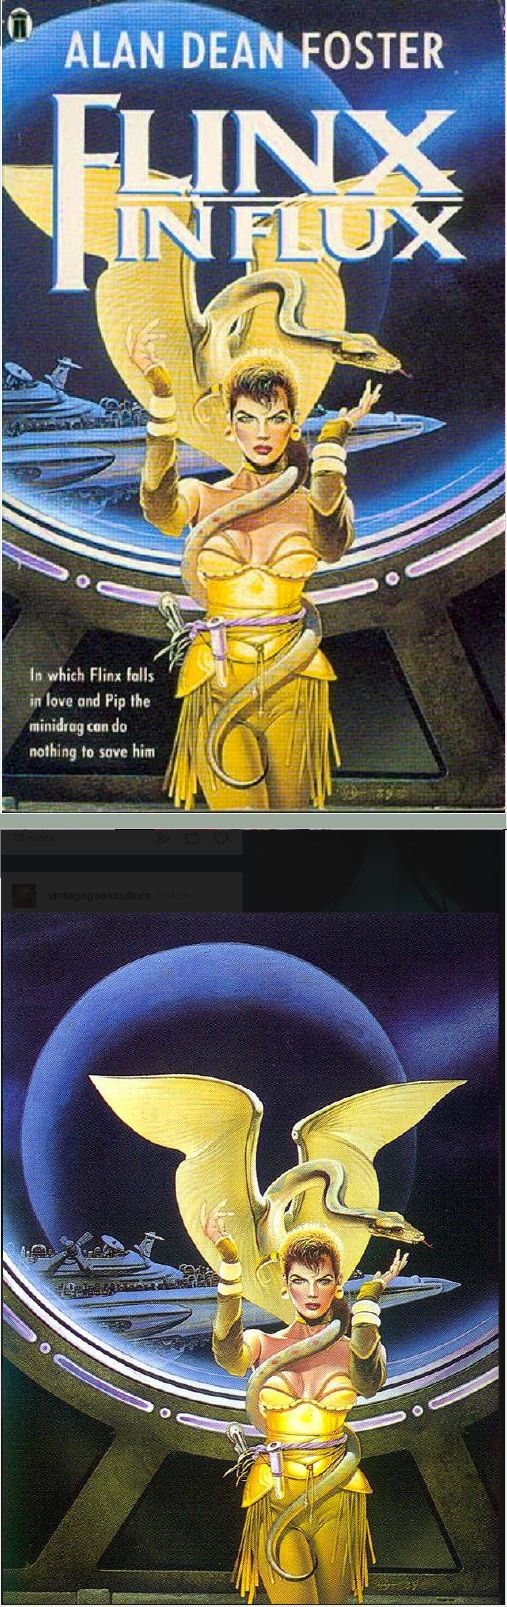 MICHAEL WHELAN - Flinx in Flux by Alan Dean Foster - 1989 New English Library - cover by isfdb - print by tumblr